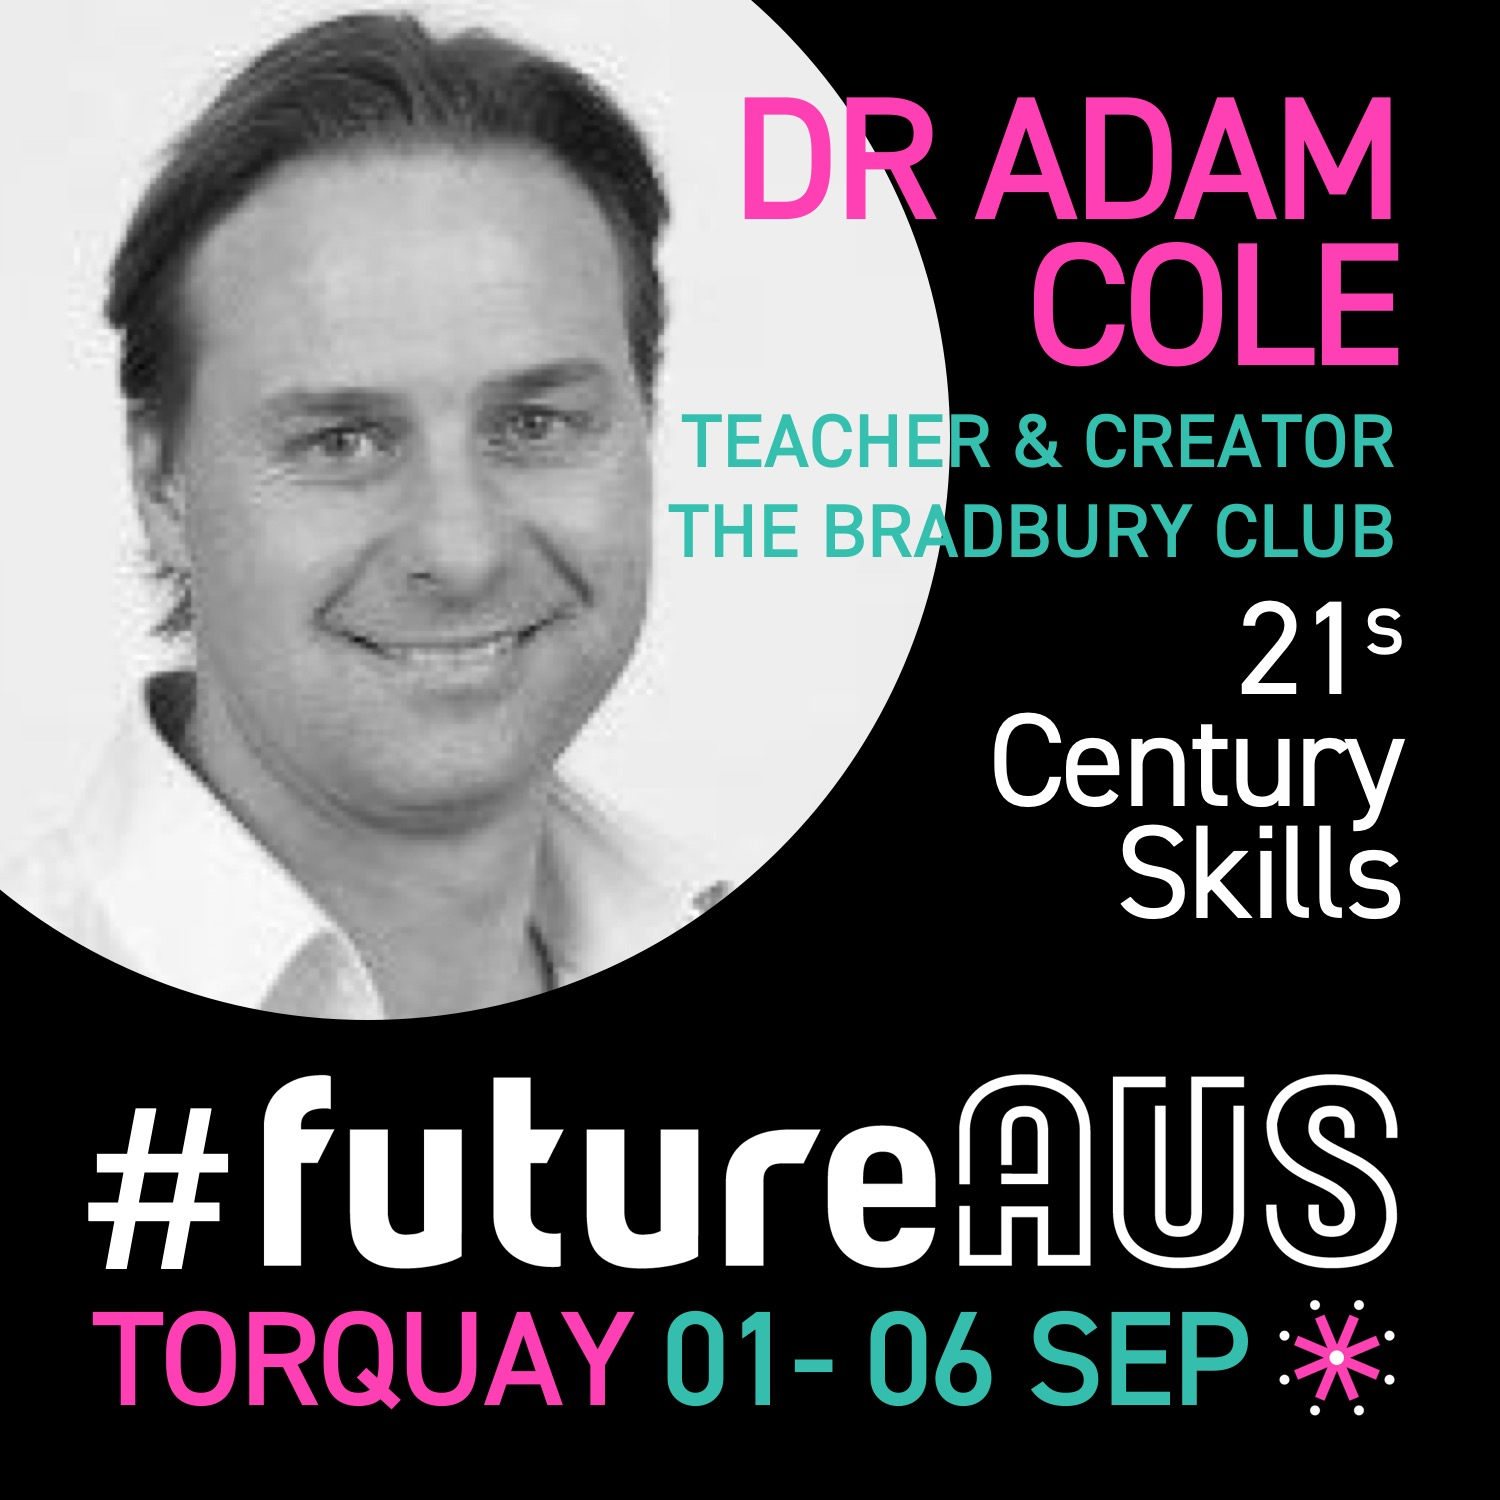 Dr Adam Cole had a successful career in medical research for 17 years, before moving to education, where he uses his industry experience to develop innovative activities to engage students in science/STEM. These include a range of classroom activities, competitions, excursions, investigative projects and professional networks. In particular, he created The Bradbury Club, which is a unique collaborative group of students, teachers, academics and industry professionals that perform engaging, long-term and ambitious projects that benefit students and the community. This has lead to a number of successes, including a Guinness World Record, conference presentations, international press coverage, grant funding and positive community action. Importantly, projects performed by the club are specifically designed to develop 21st century skills, such as problem-solving, critical thinking, teamwork and communication skills. These are highly valued in the modern workplace and greatly benefit our students.